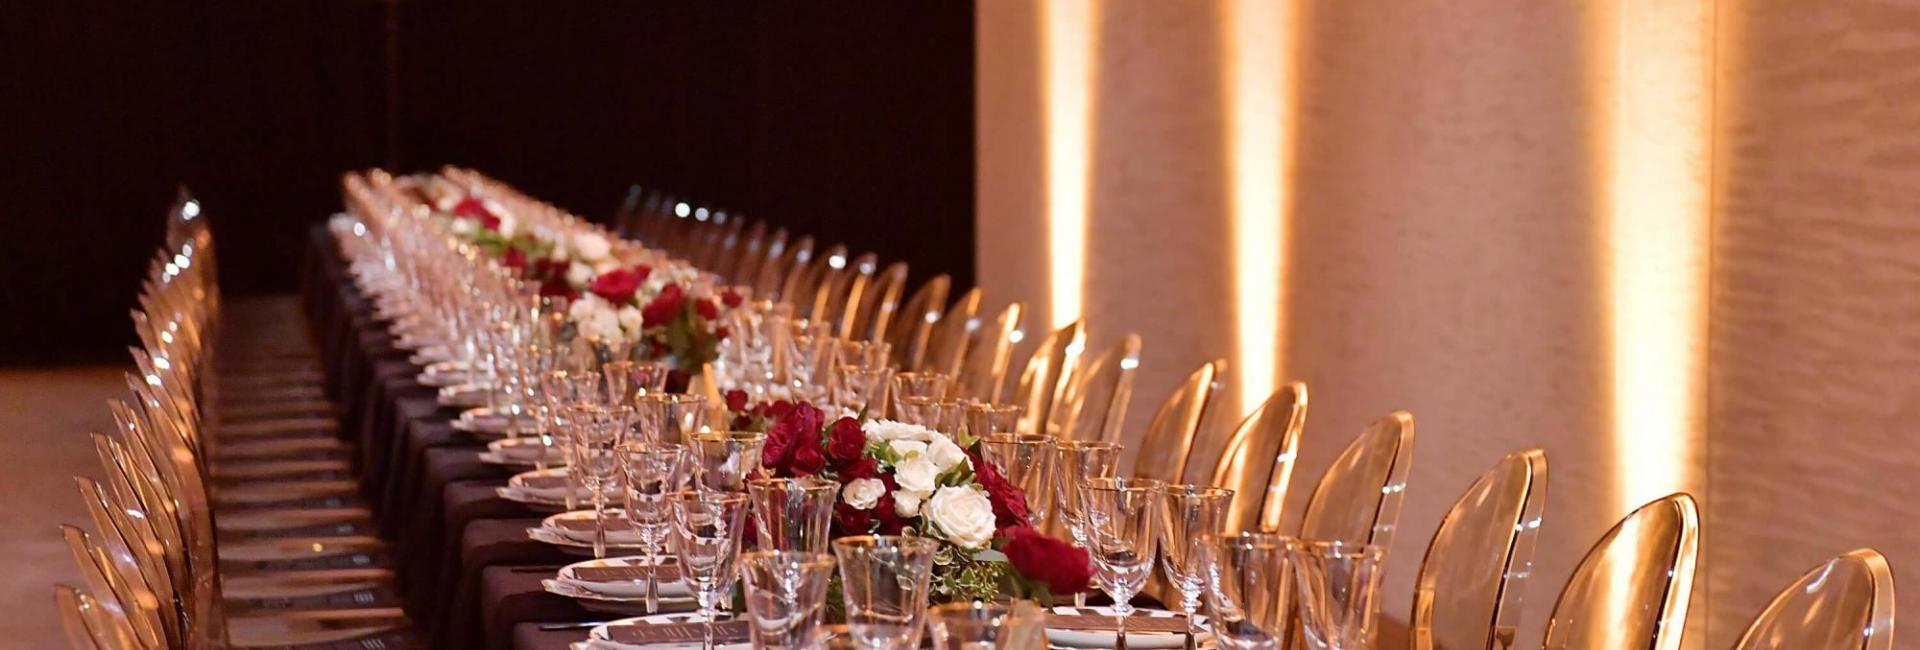 A long table set with pink and gold plates and glassware